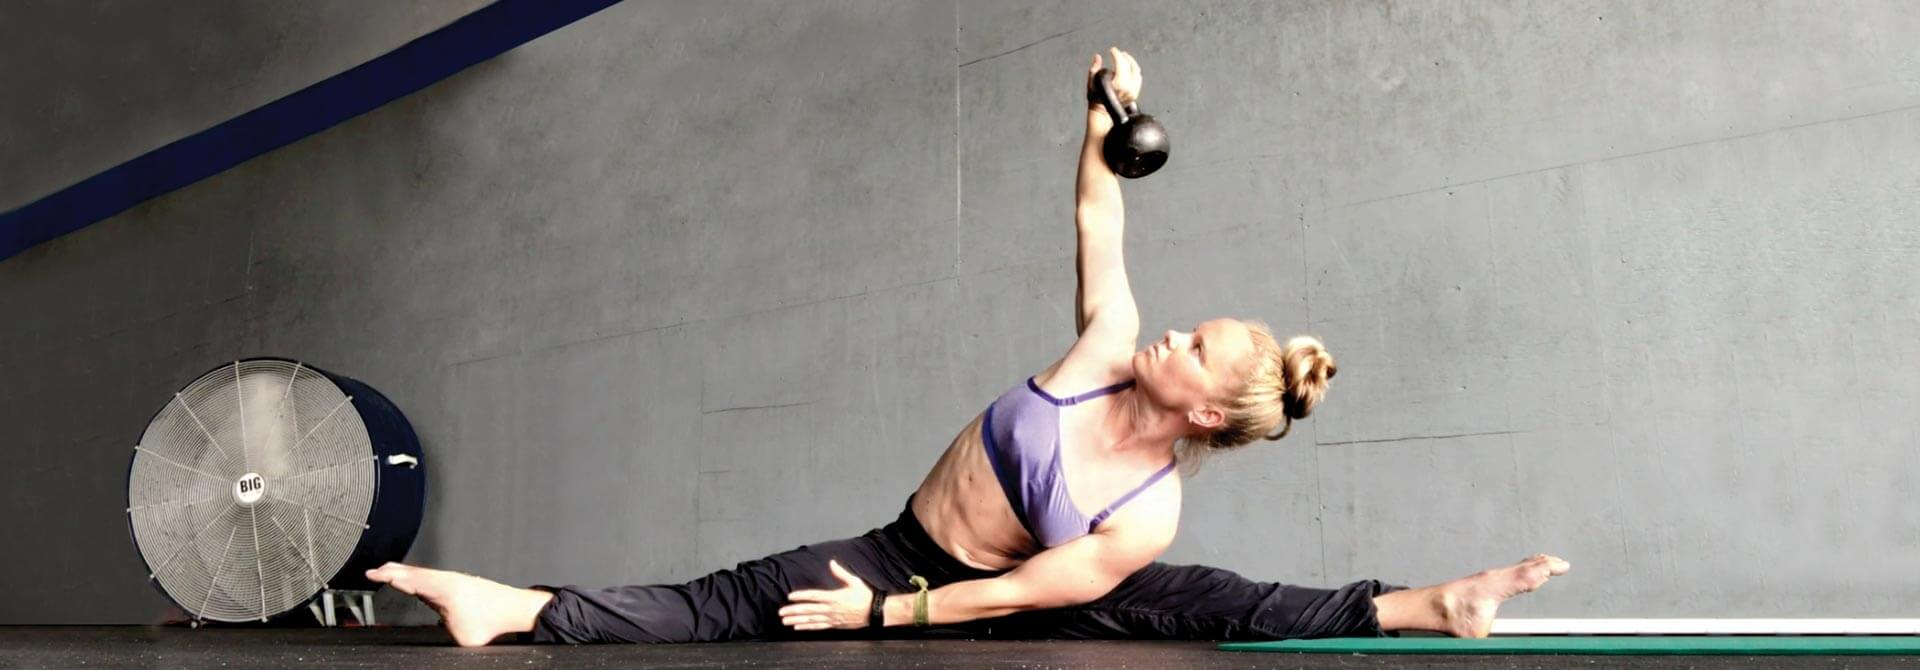 GymnasticBodies female athlete demonstrates oblique strength with a weighted side pancake.